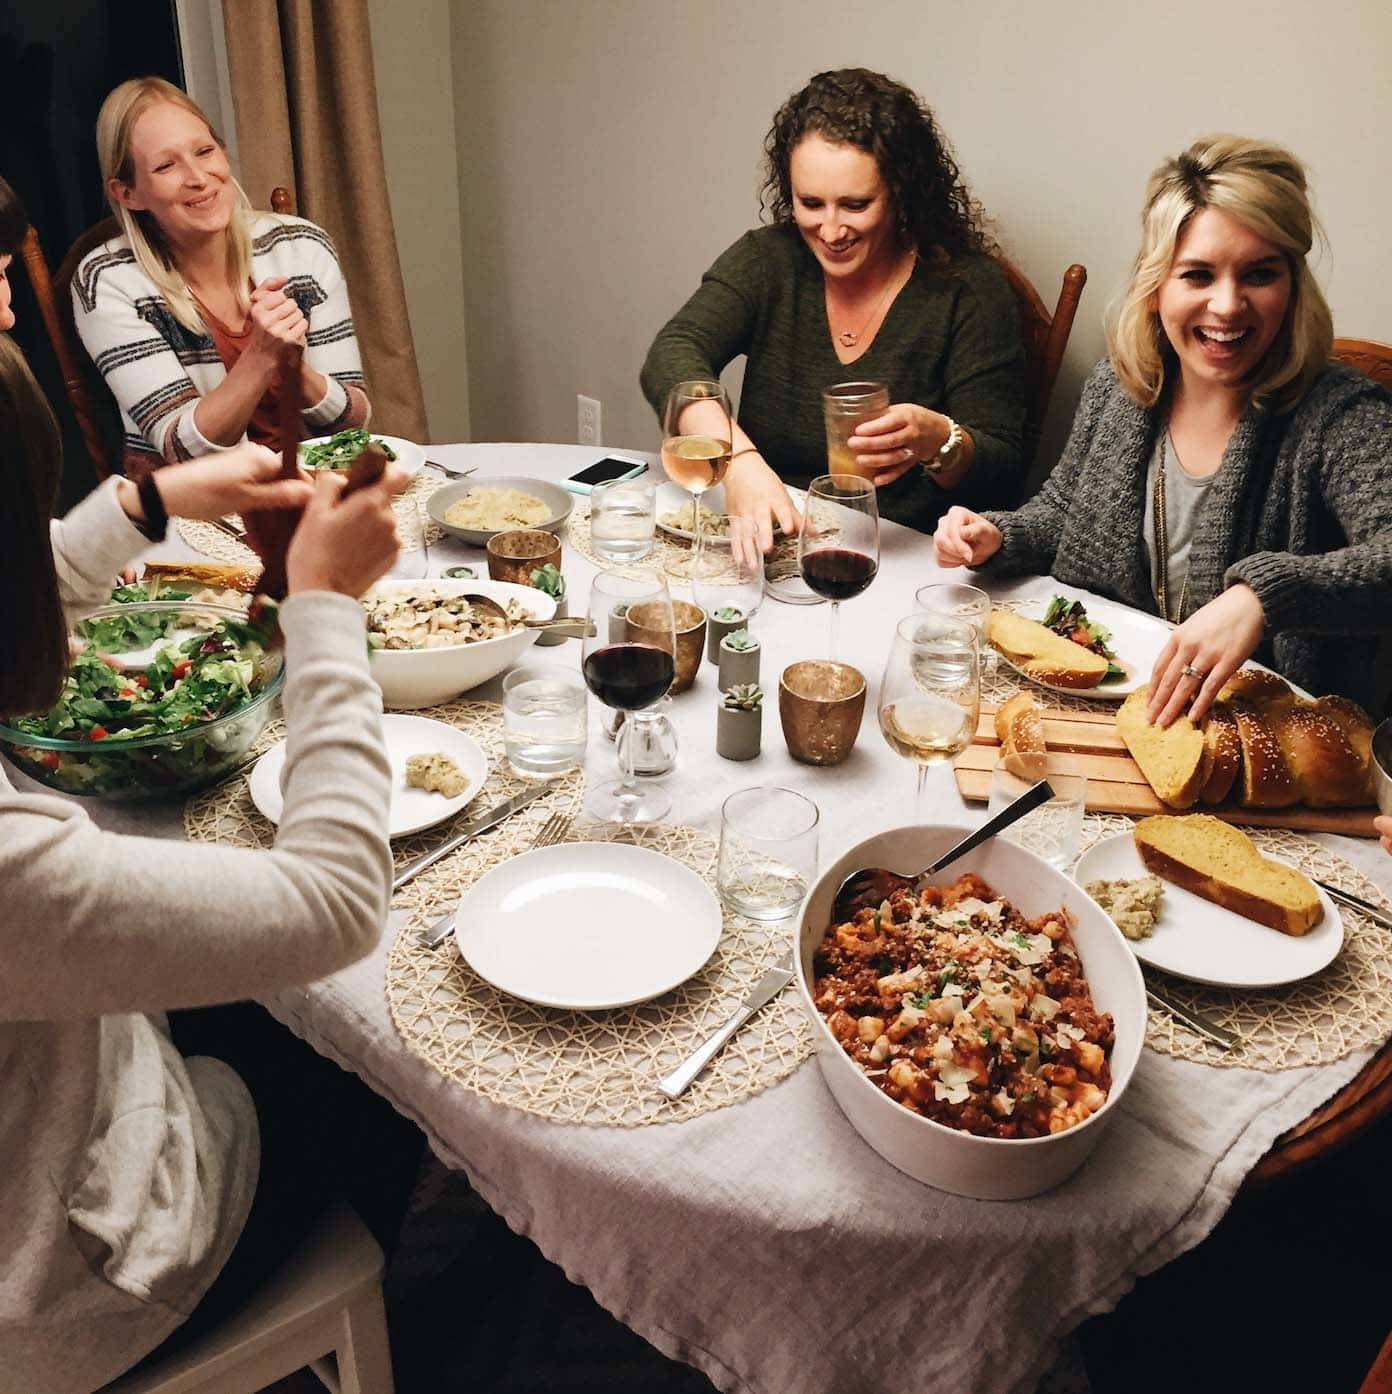 Table with plates of food and women laughing.